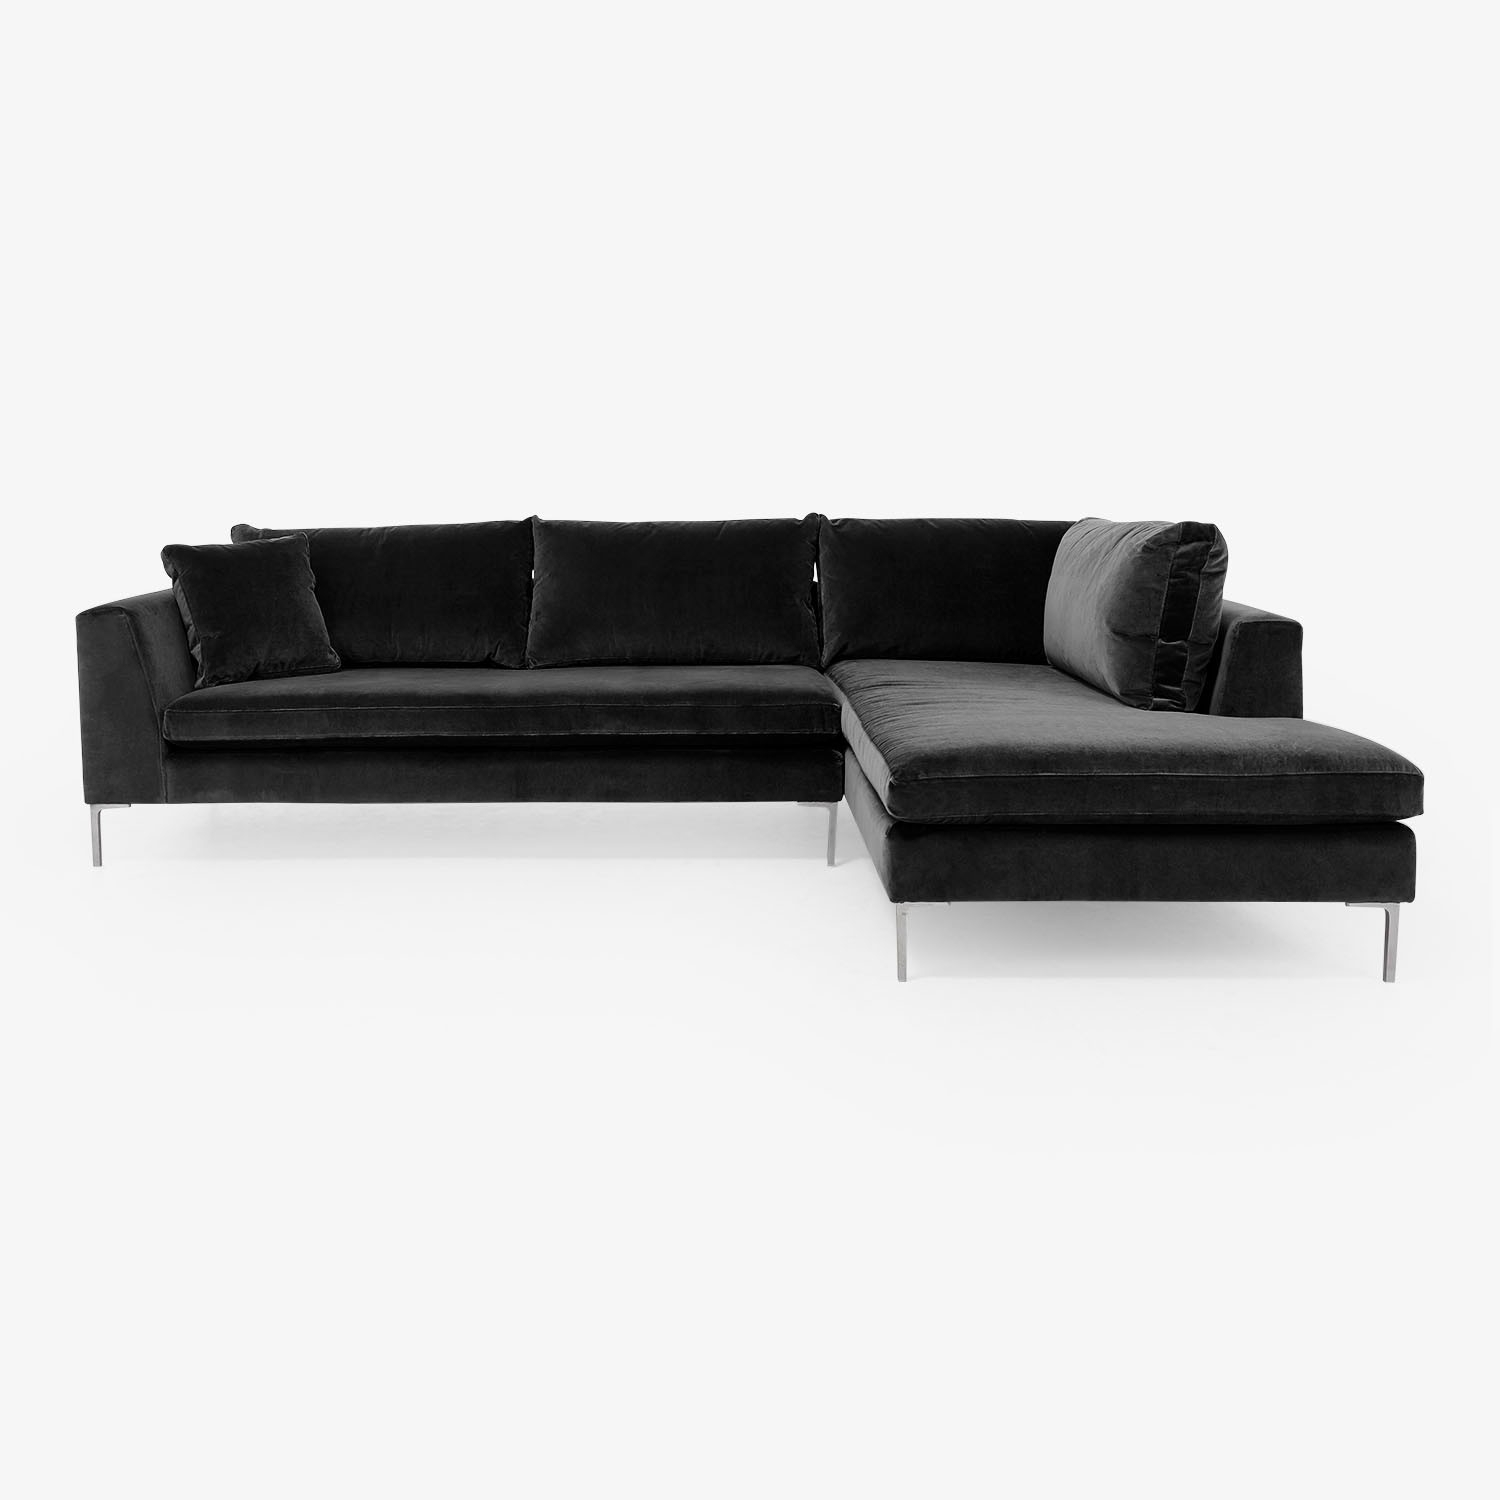 Modern Sectional Sofas For Apartments At Abc Home & Carpet In Harper Down 3 Piece Sectionals (Image 17 of 25)